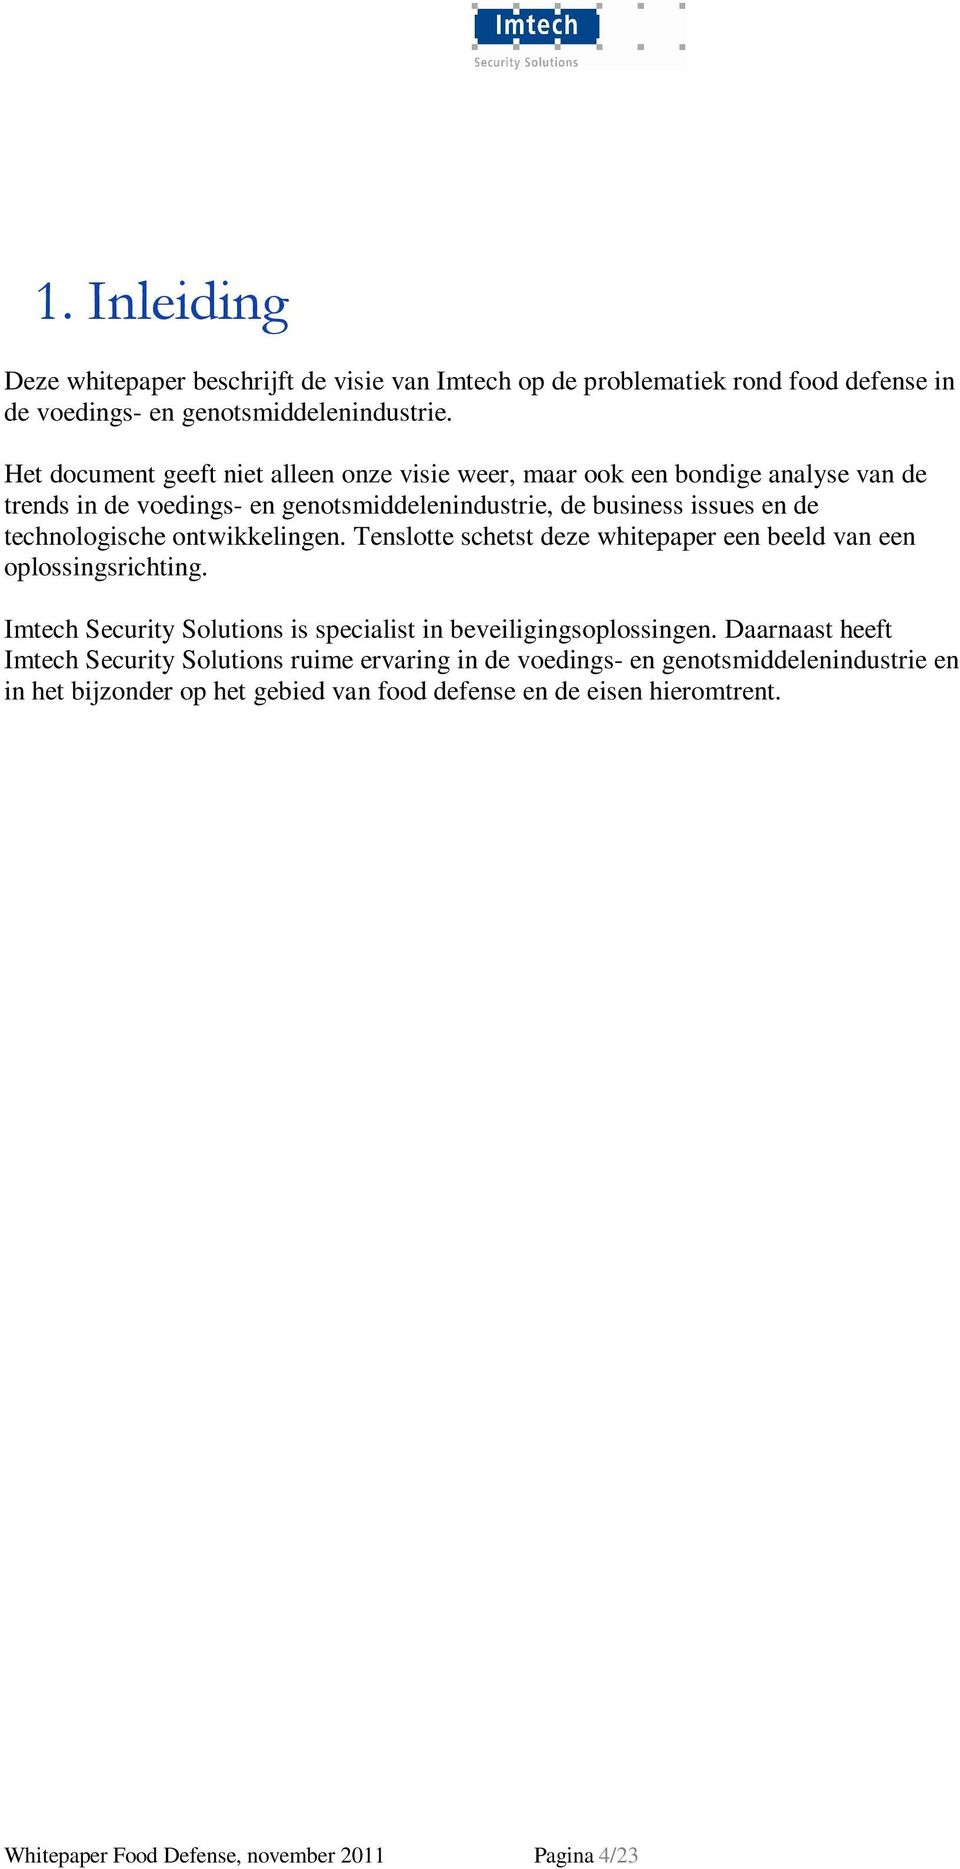 ontwikkelingen. Tenslotte schetst deze whitepaper een beeld van een oplossingsrichting. Imtech Security Solutions is specialist in beveiligingsoplossingen.